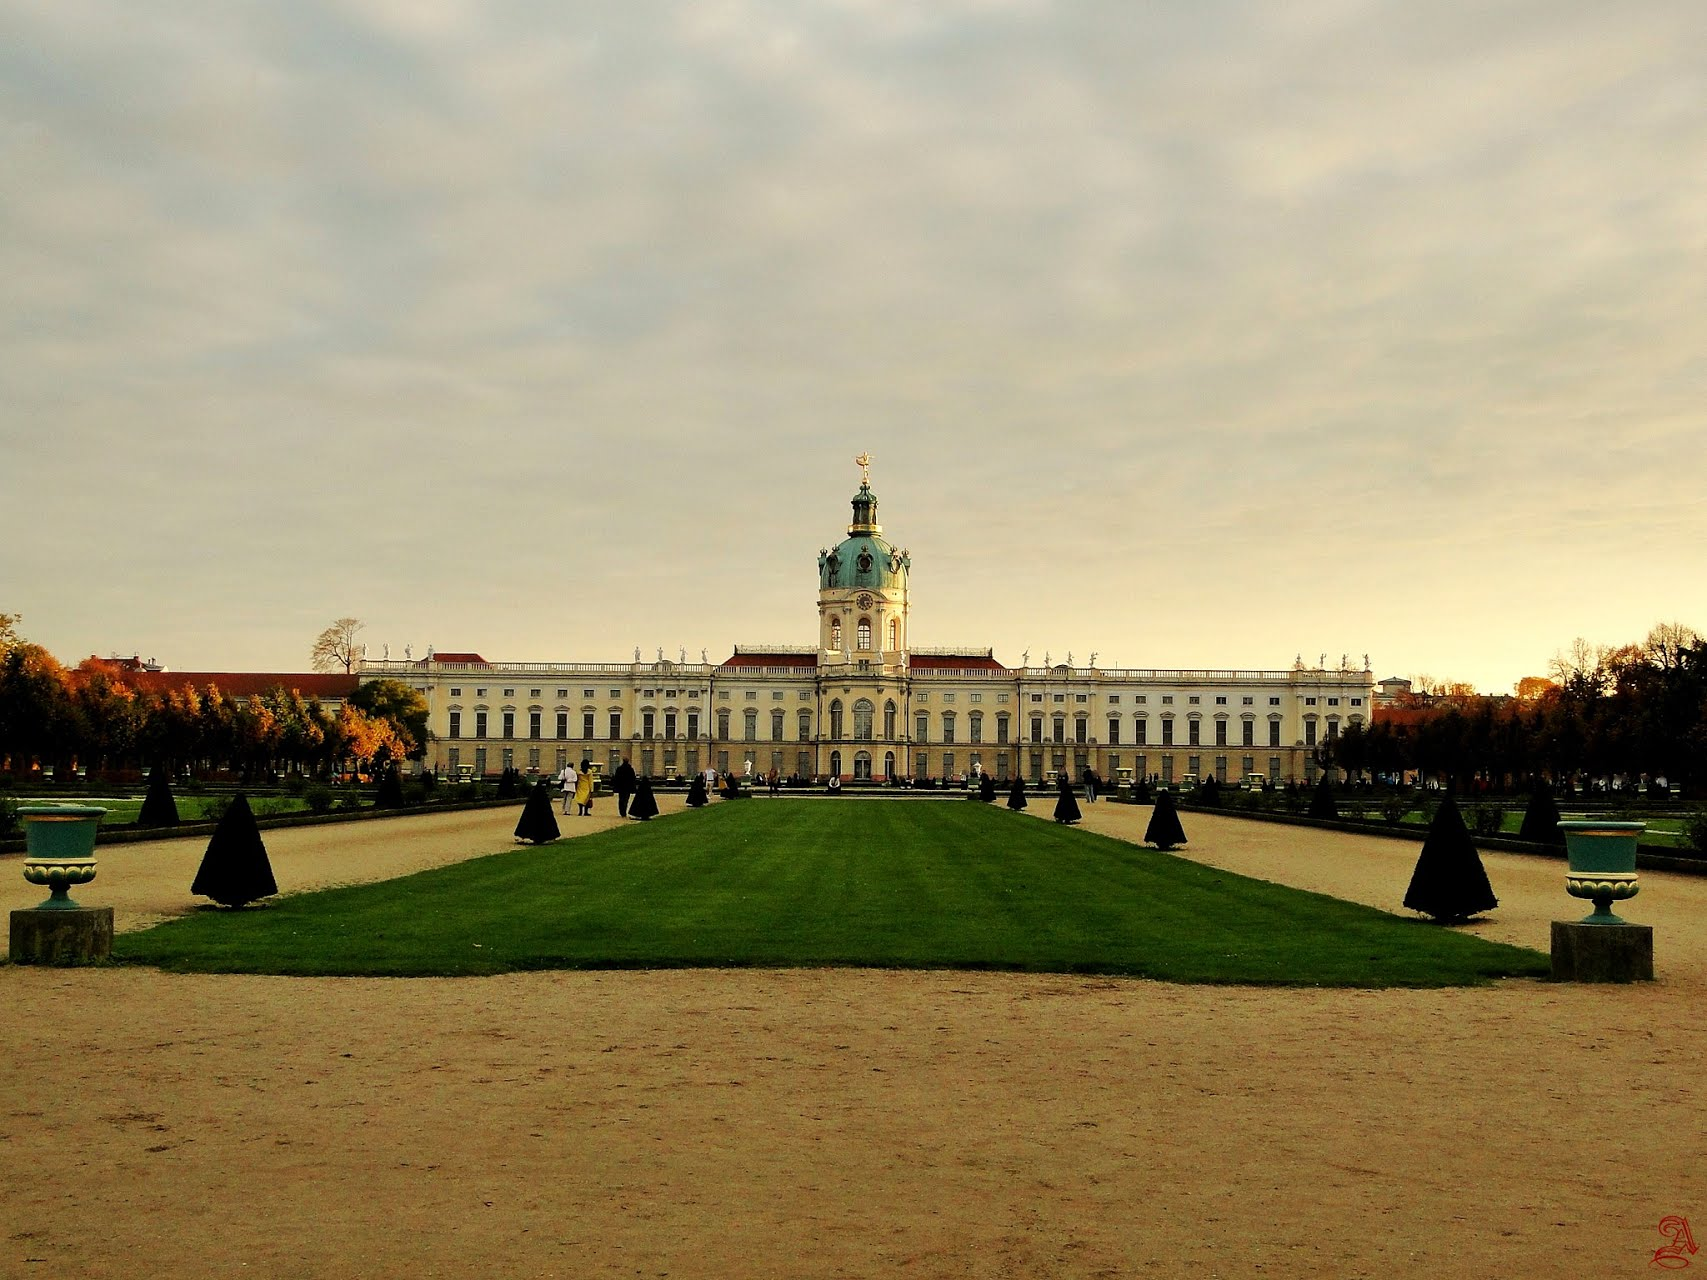 charlottenburg_palace_sunset, дворец Шарлоттенбург закат